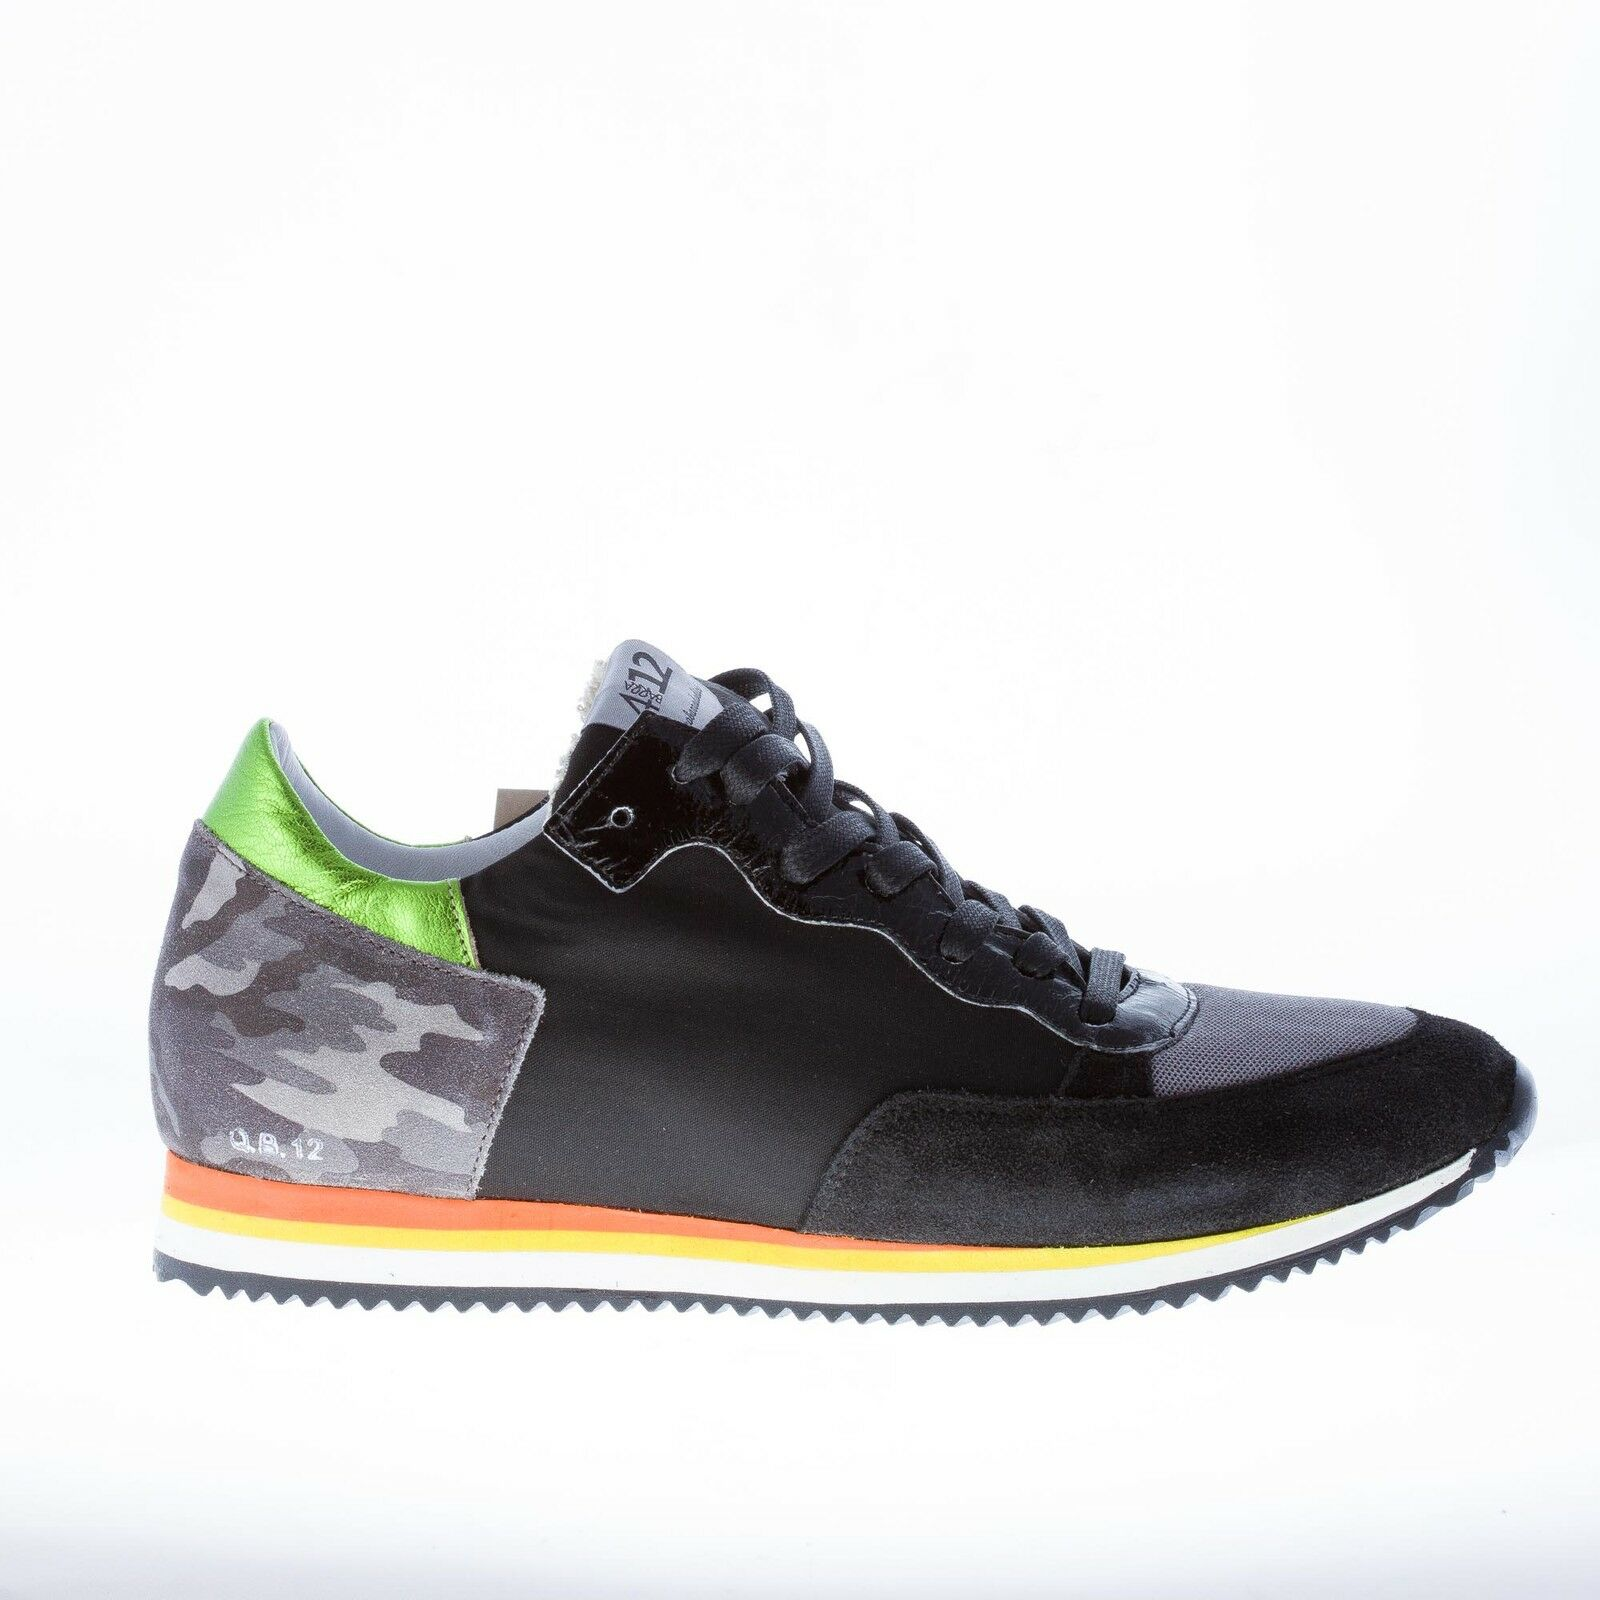 QUATTROBARRADODICI shoes homme Black suede and fabric sneaker with mimetic